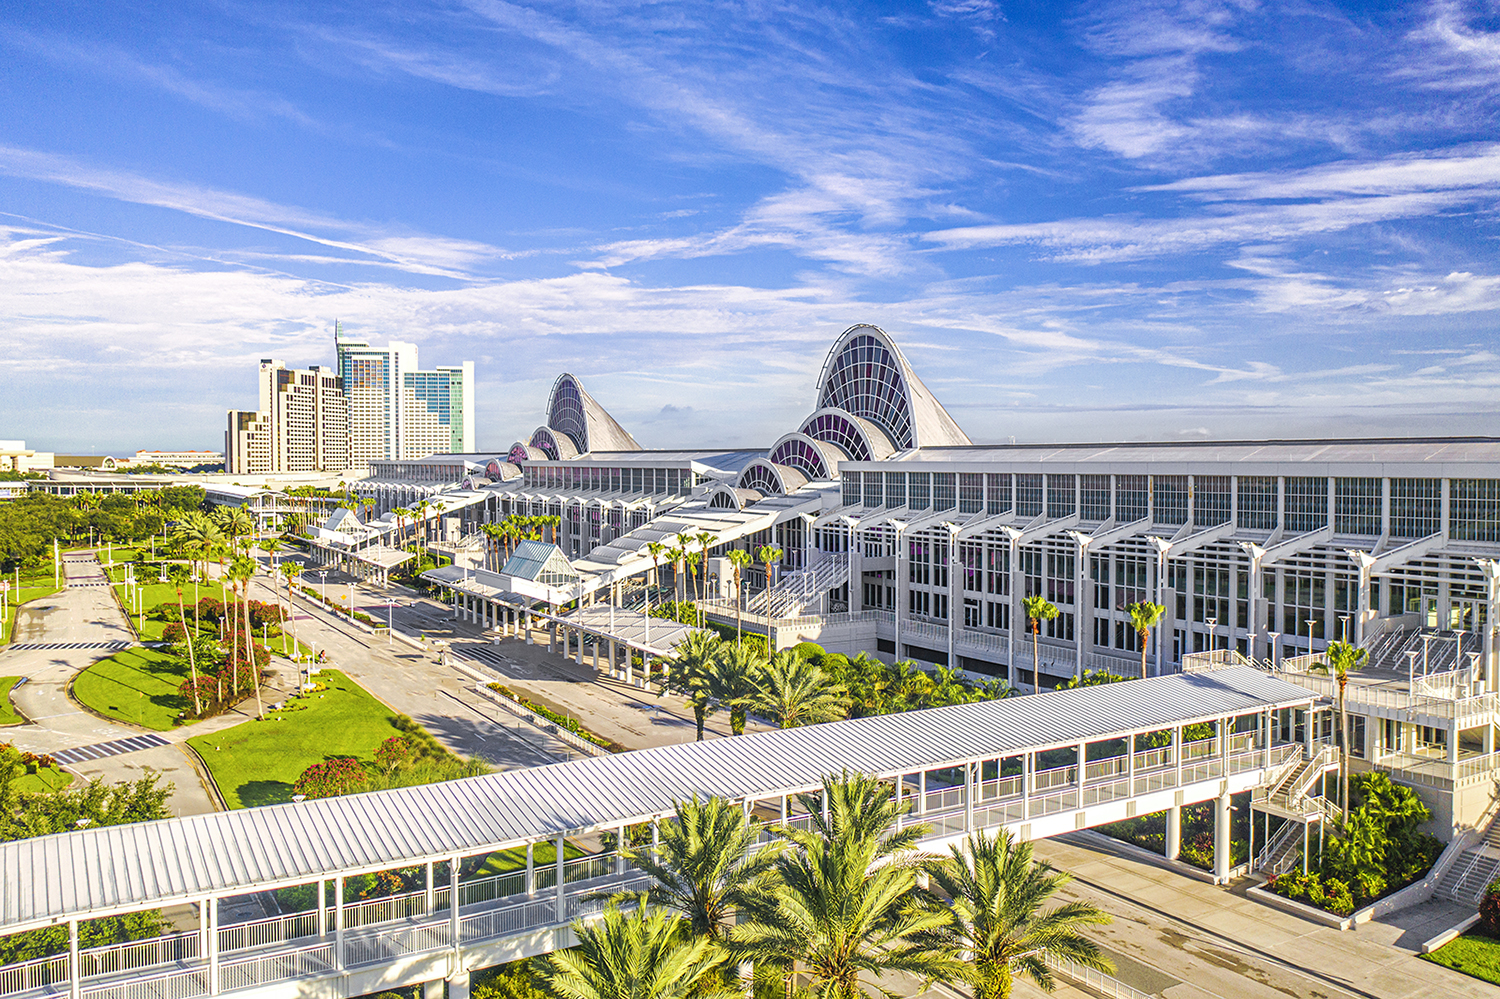 Orange County Convention Center Recognized as a Best Southeast US Convention Center by Prevue Meeting & Incentives Magazine